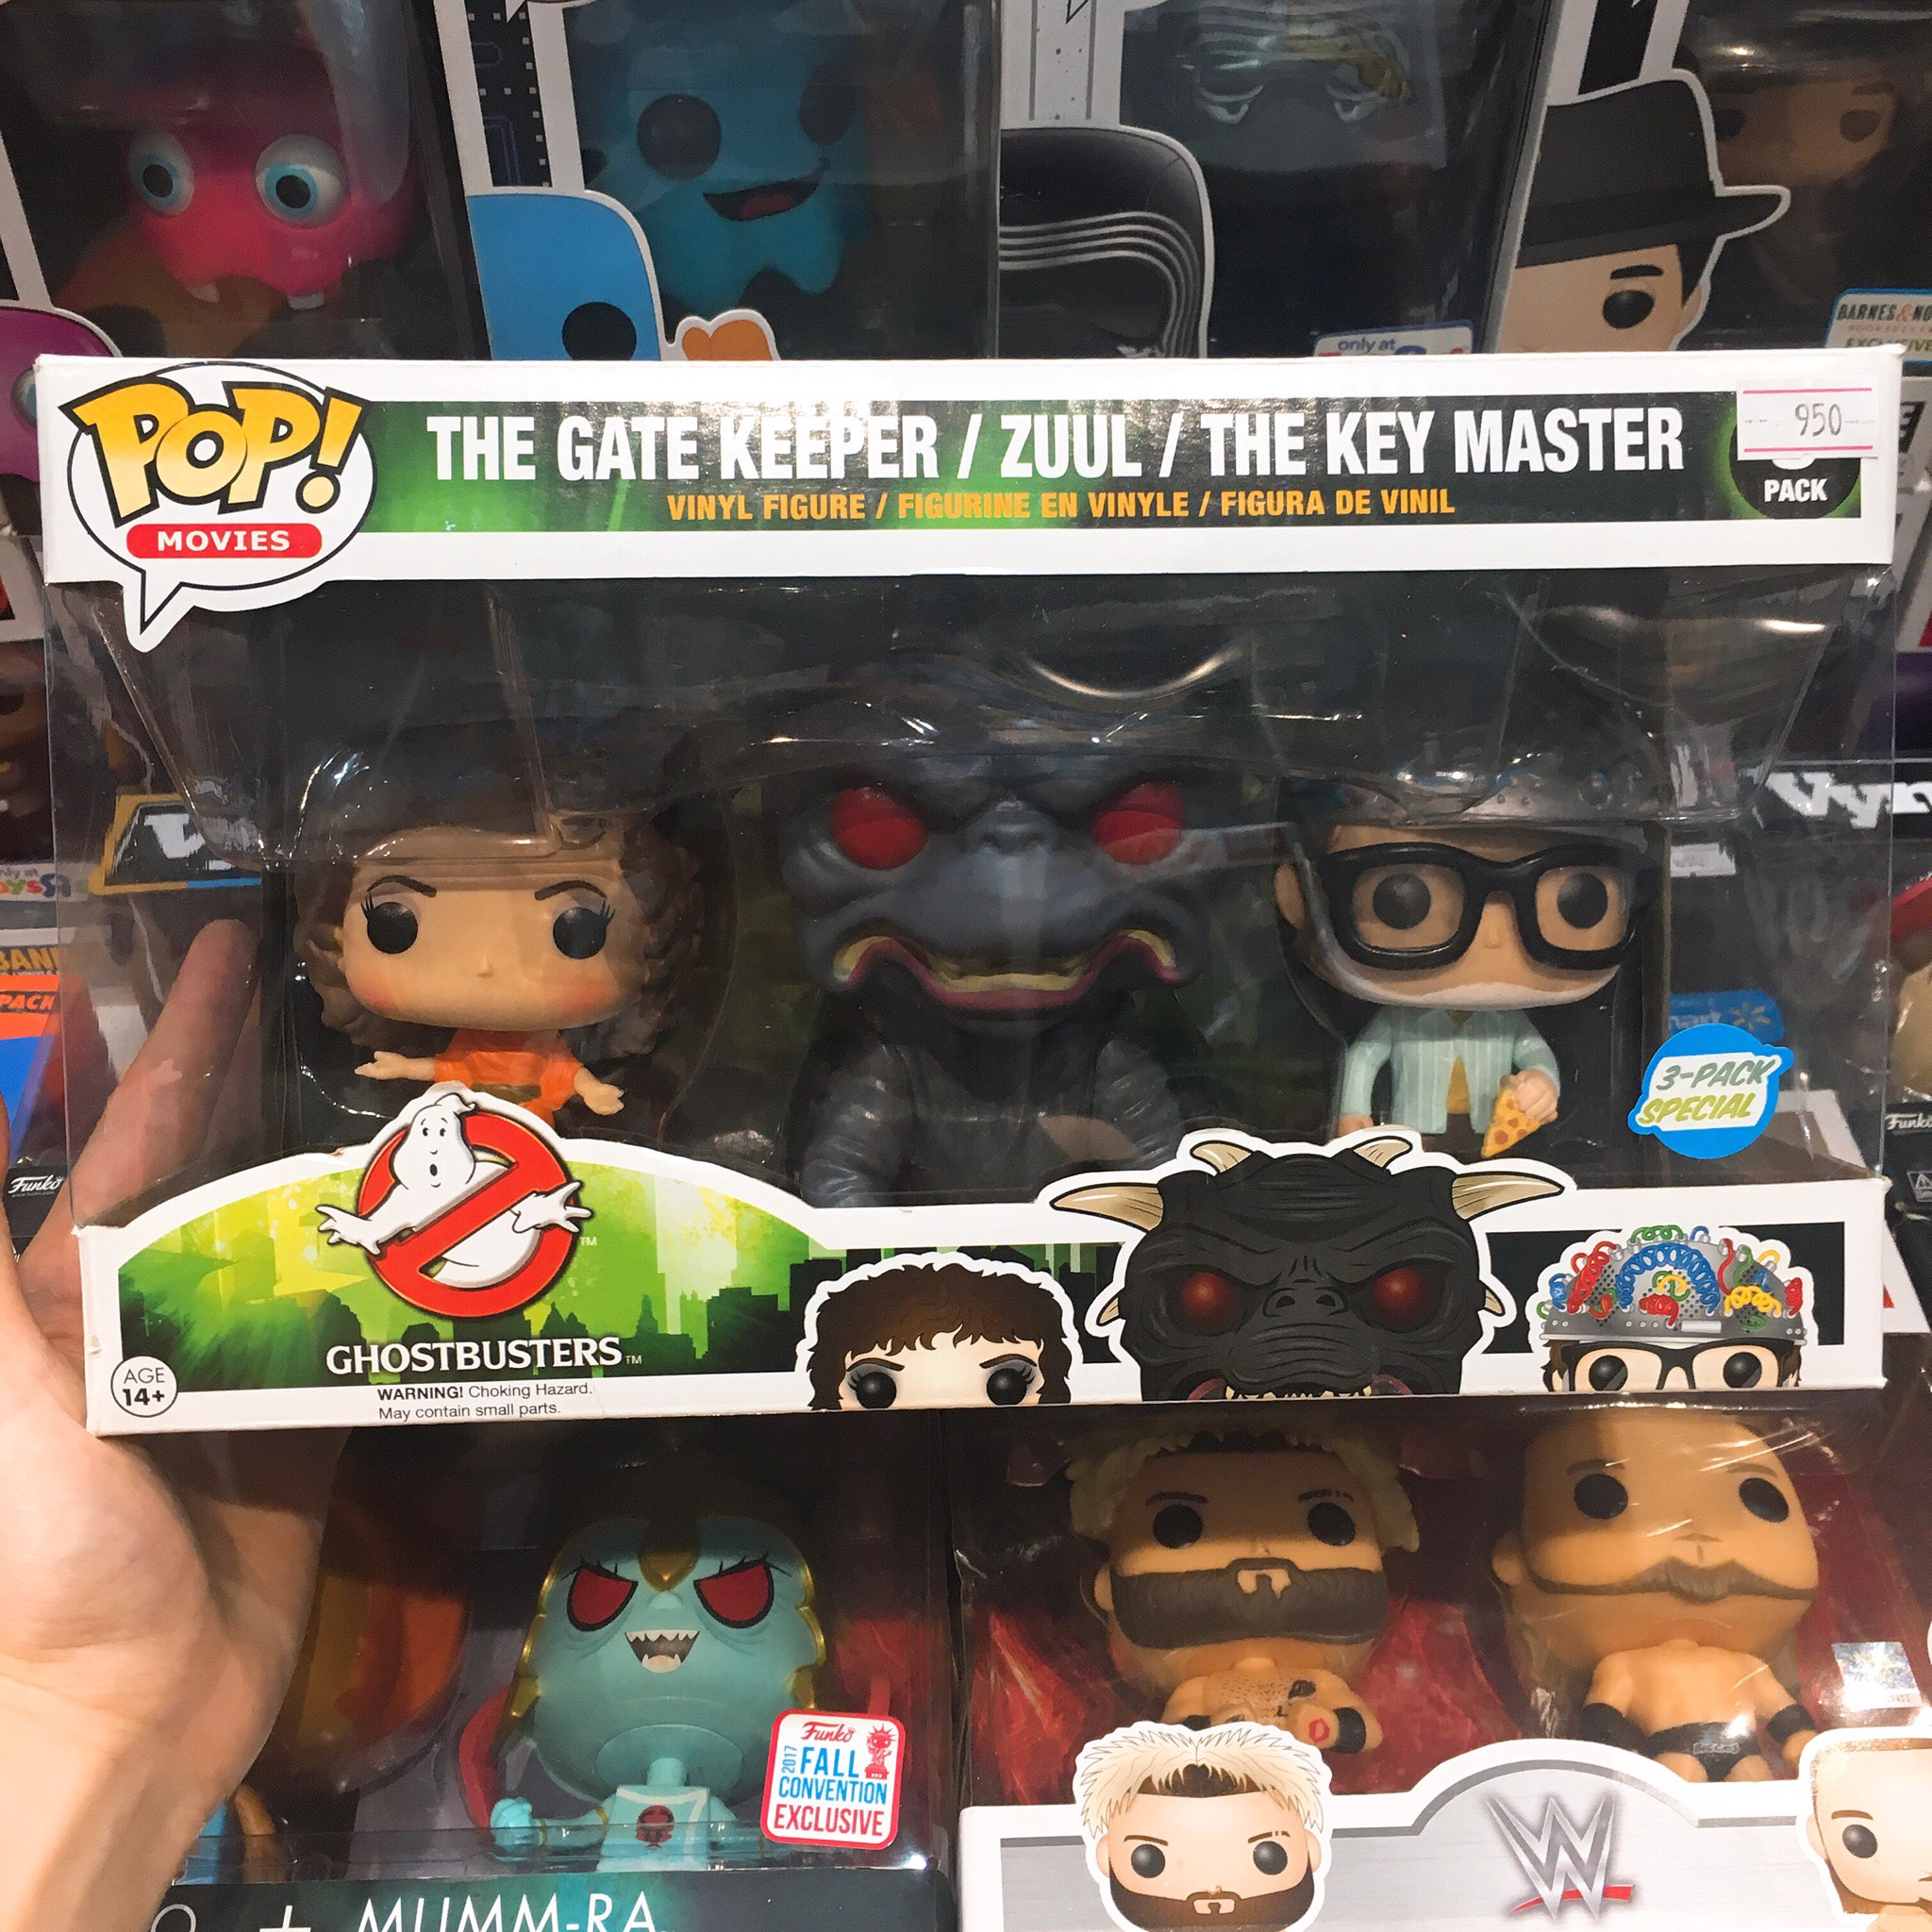 [CÓ SẴN] FUNKO POP 3 Pack The Gate Keeper, Zuul & The Key Master